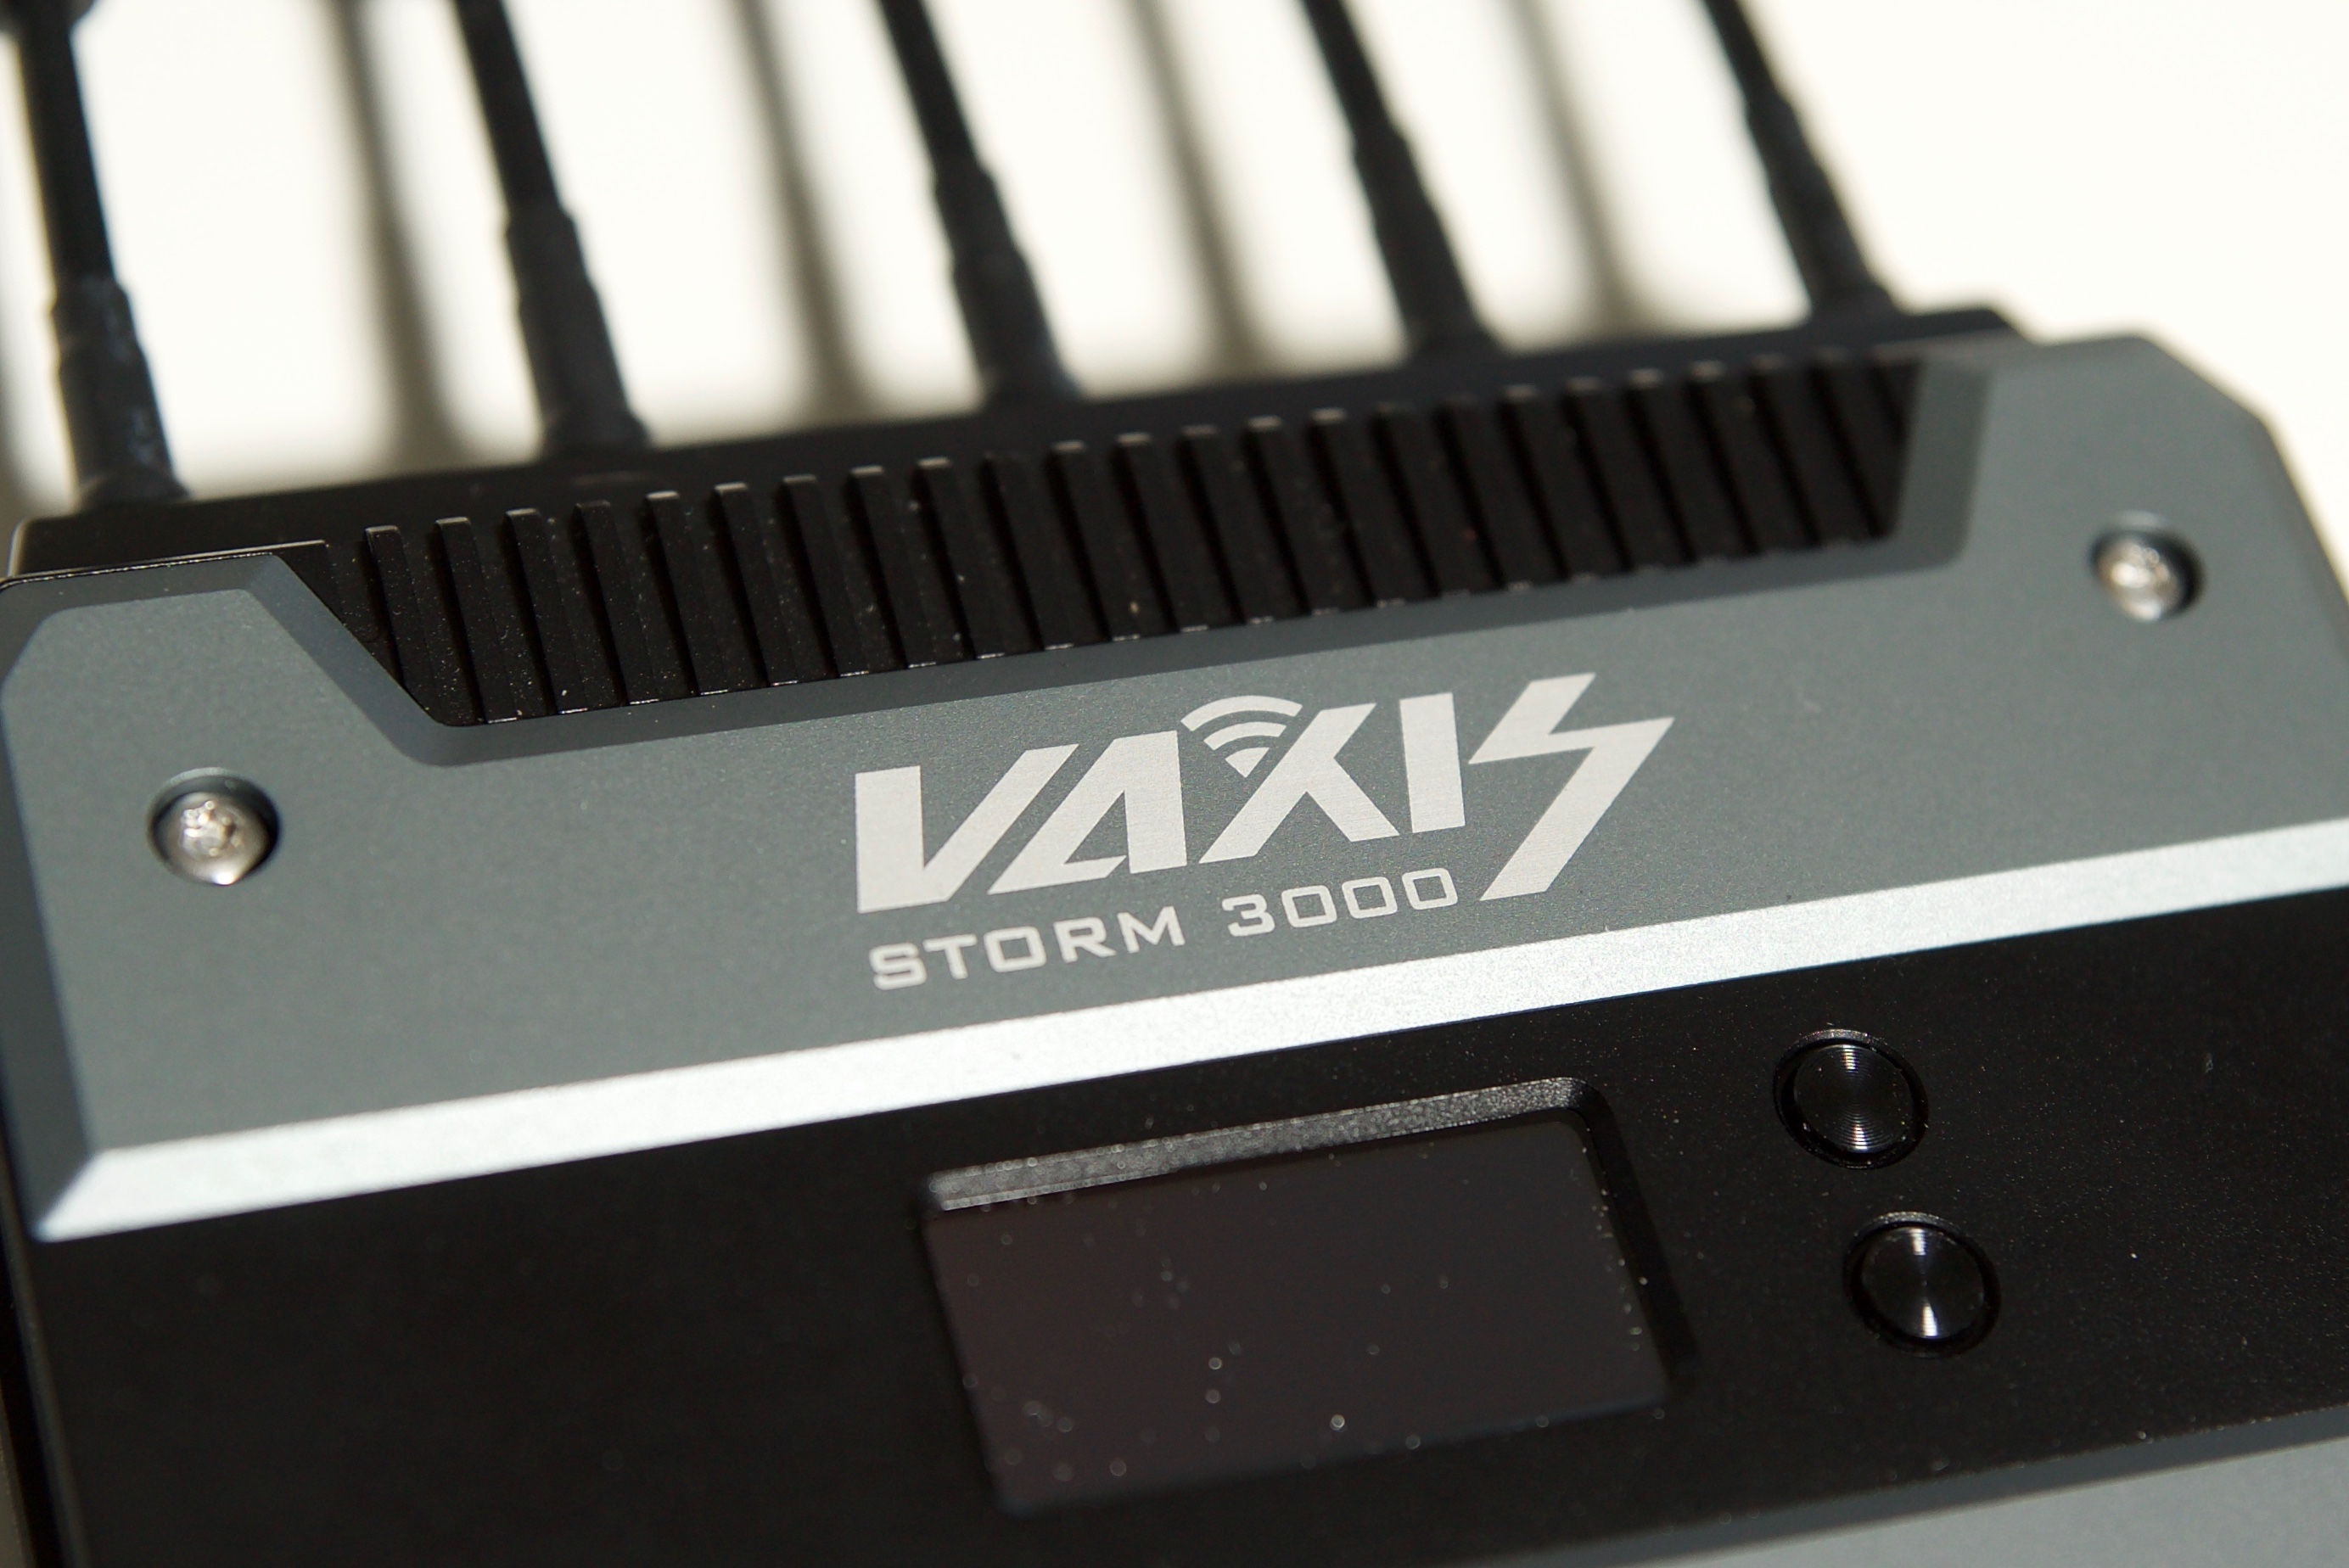 Vaxis Storm 3000 Review